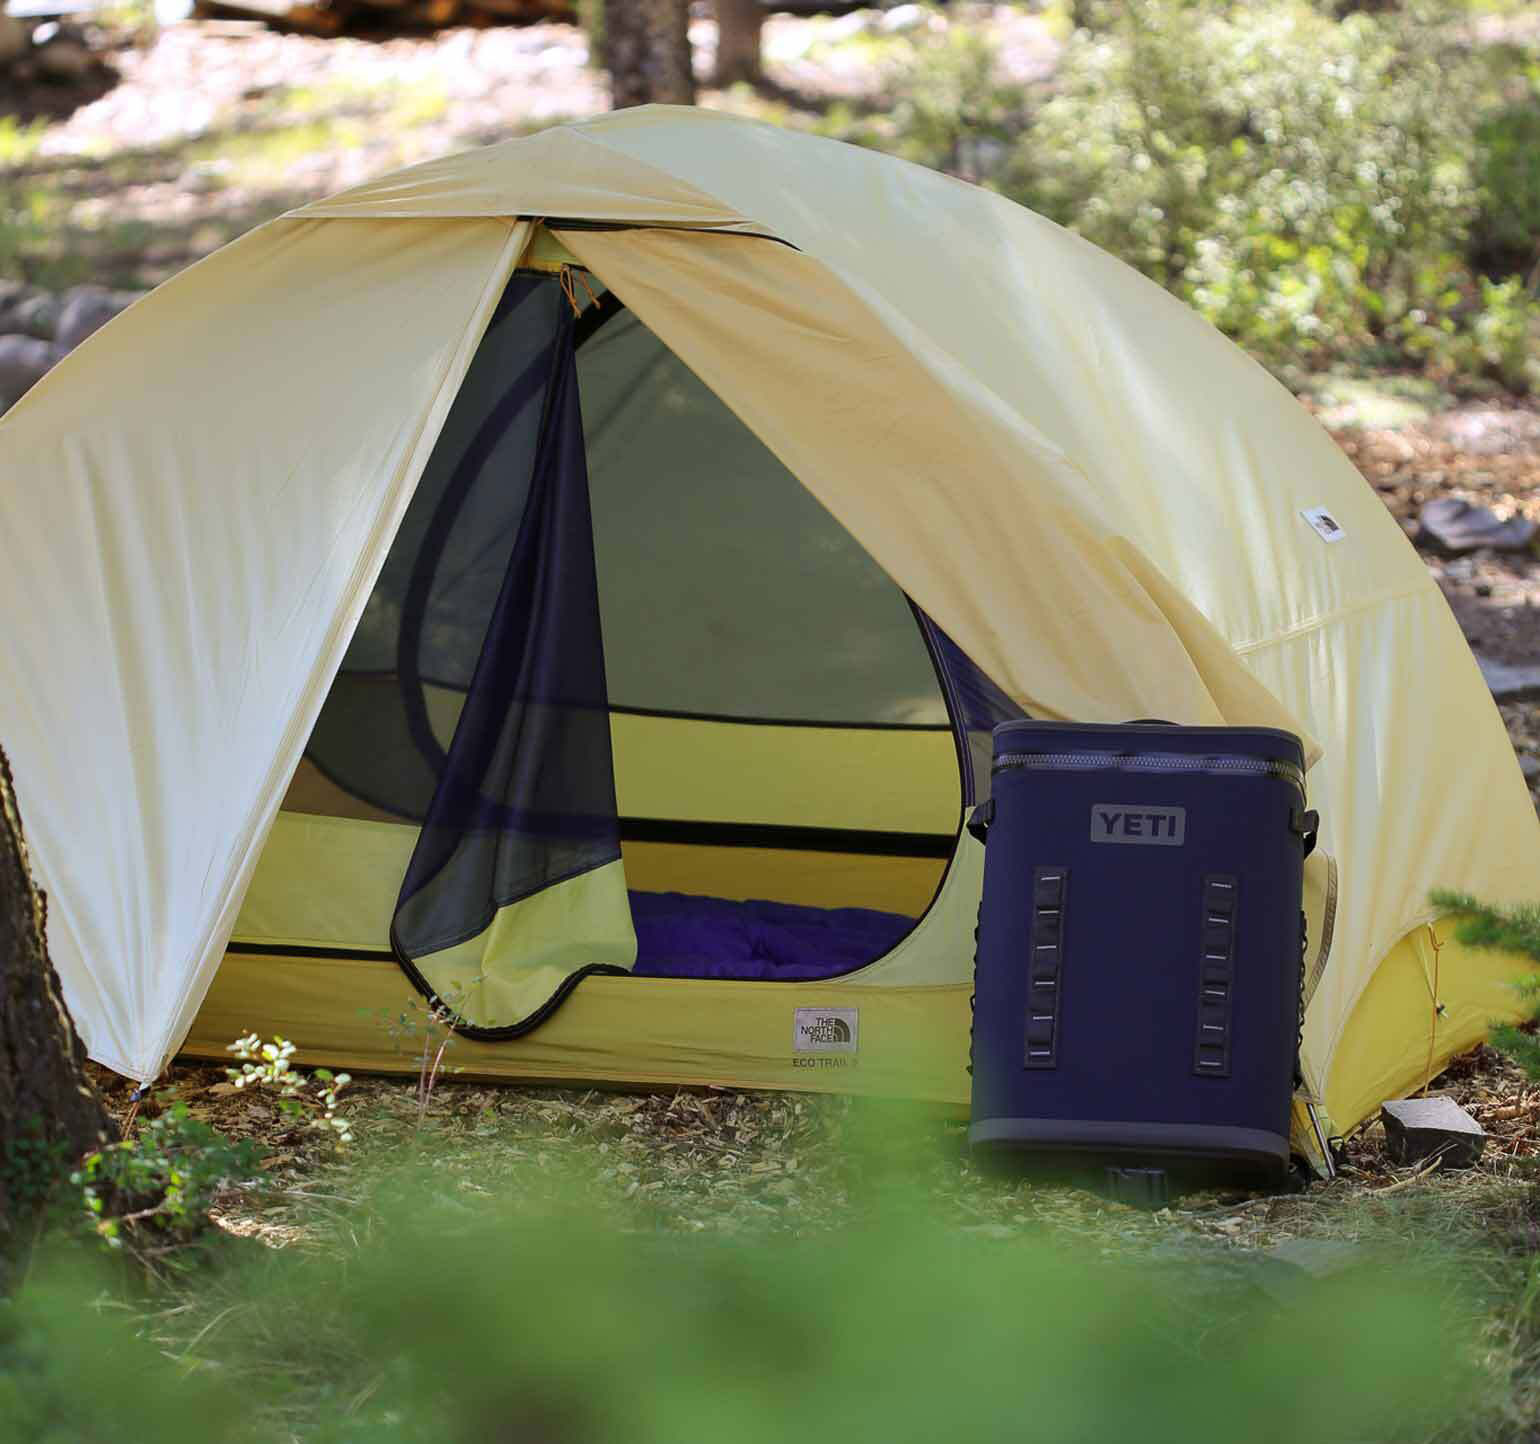 yellow tent in the woods with camping gear